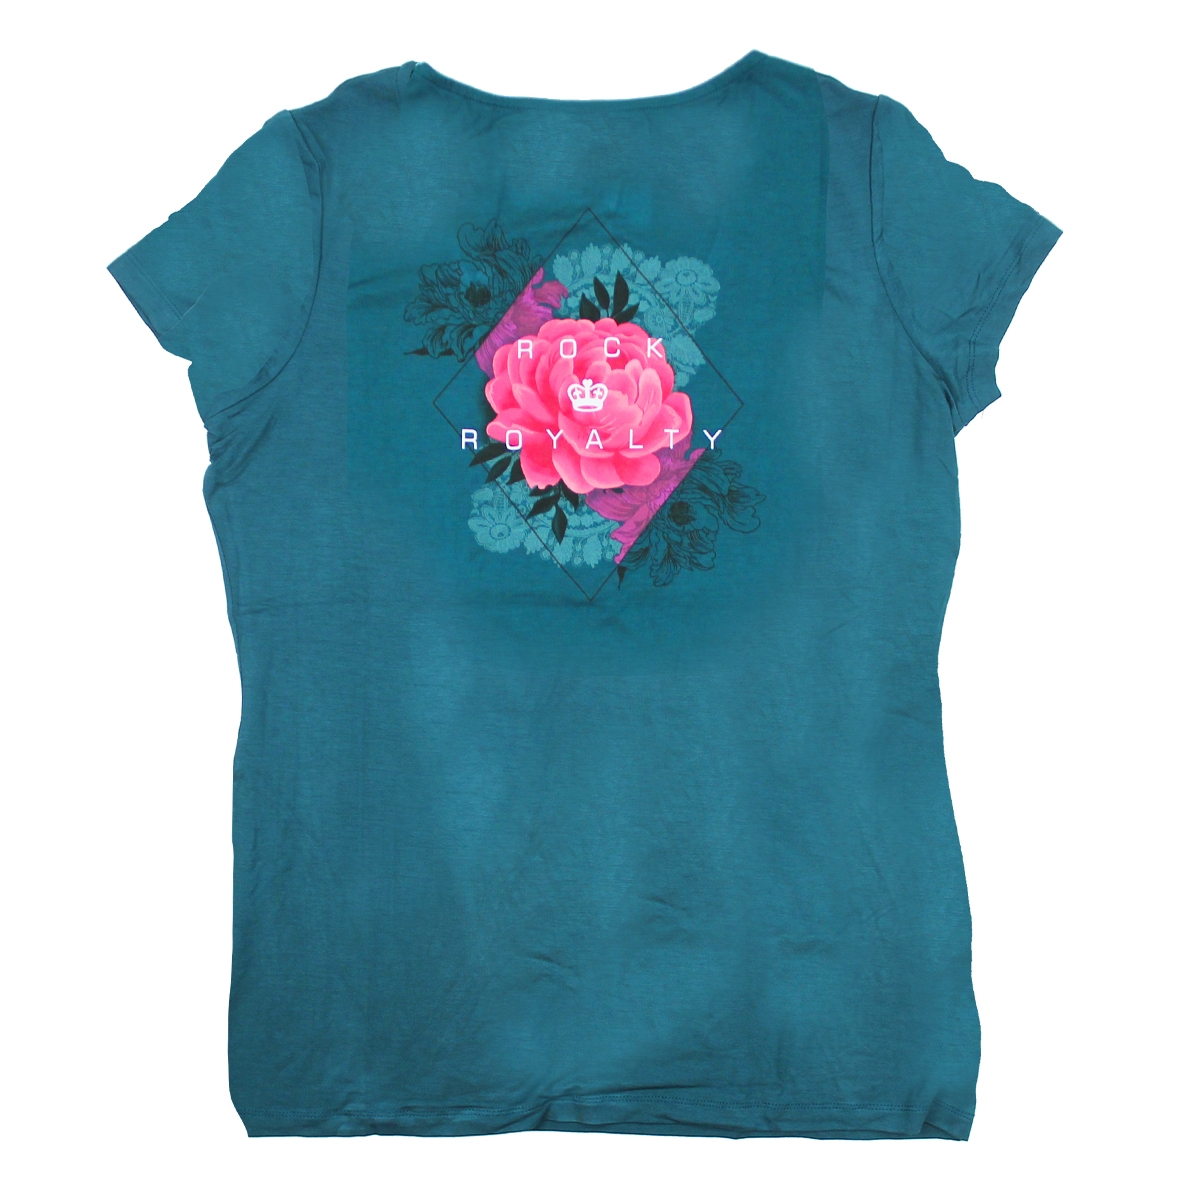 Ladies Couture Laced Neck Tee, New York 1